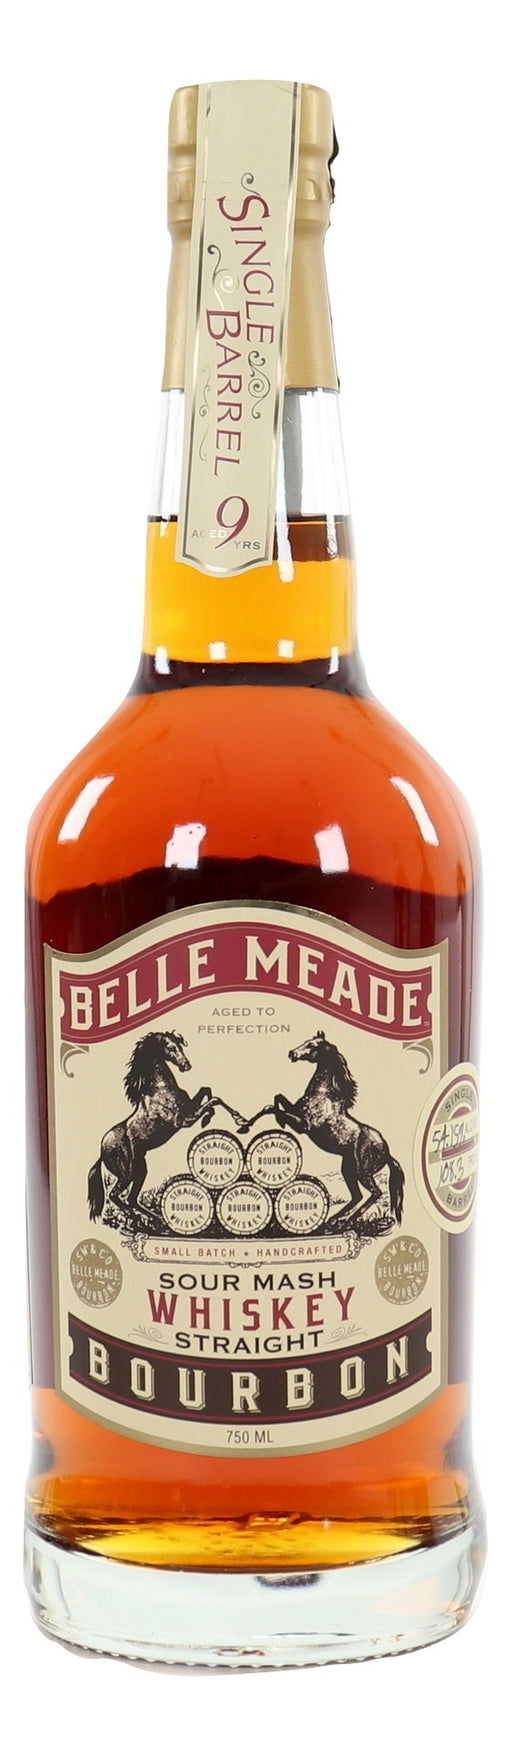 Belle Meade Single Barrel Bourbon 9 Year Old - Barrel 669